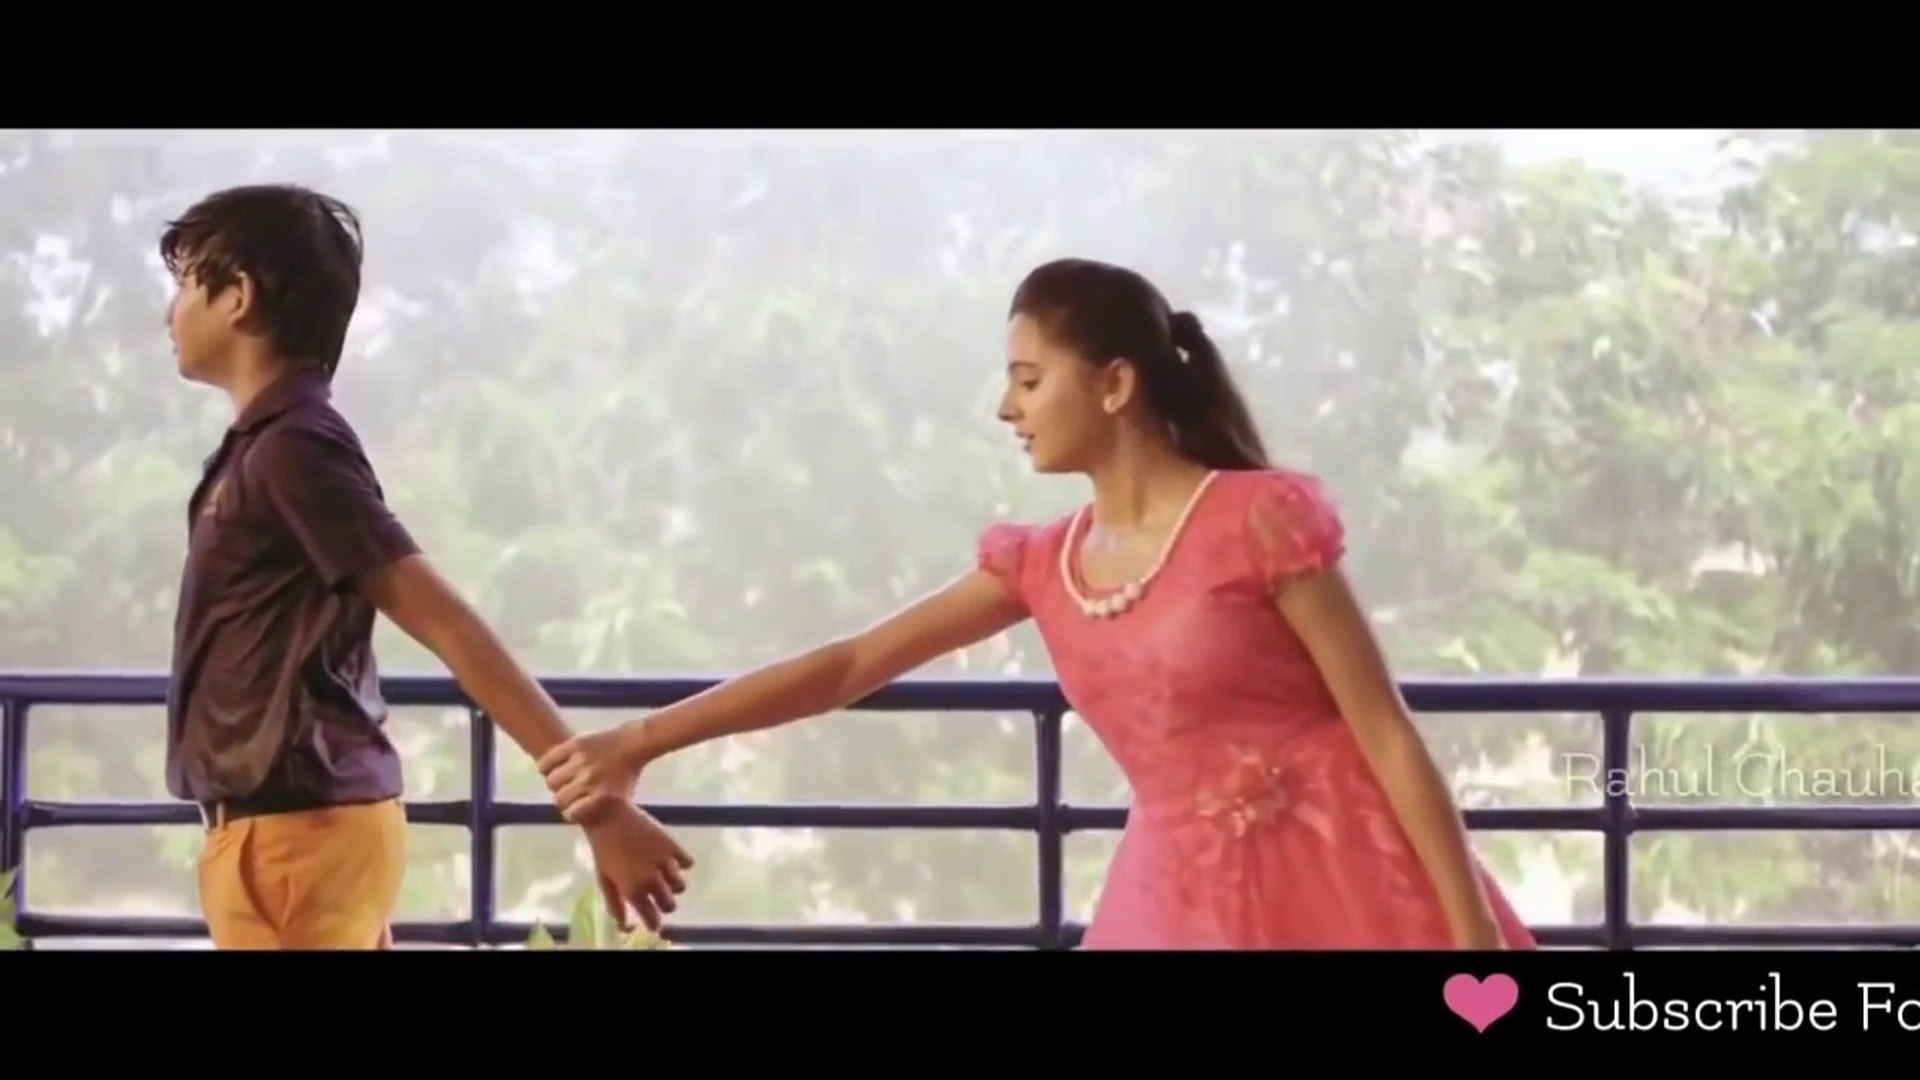 Romantic Love Status In School Cute Love Story Whatsapp Status Best Romantic Whatsapp Video 3